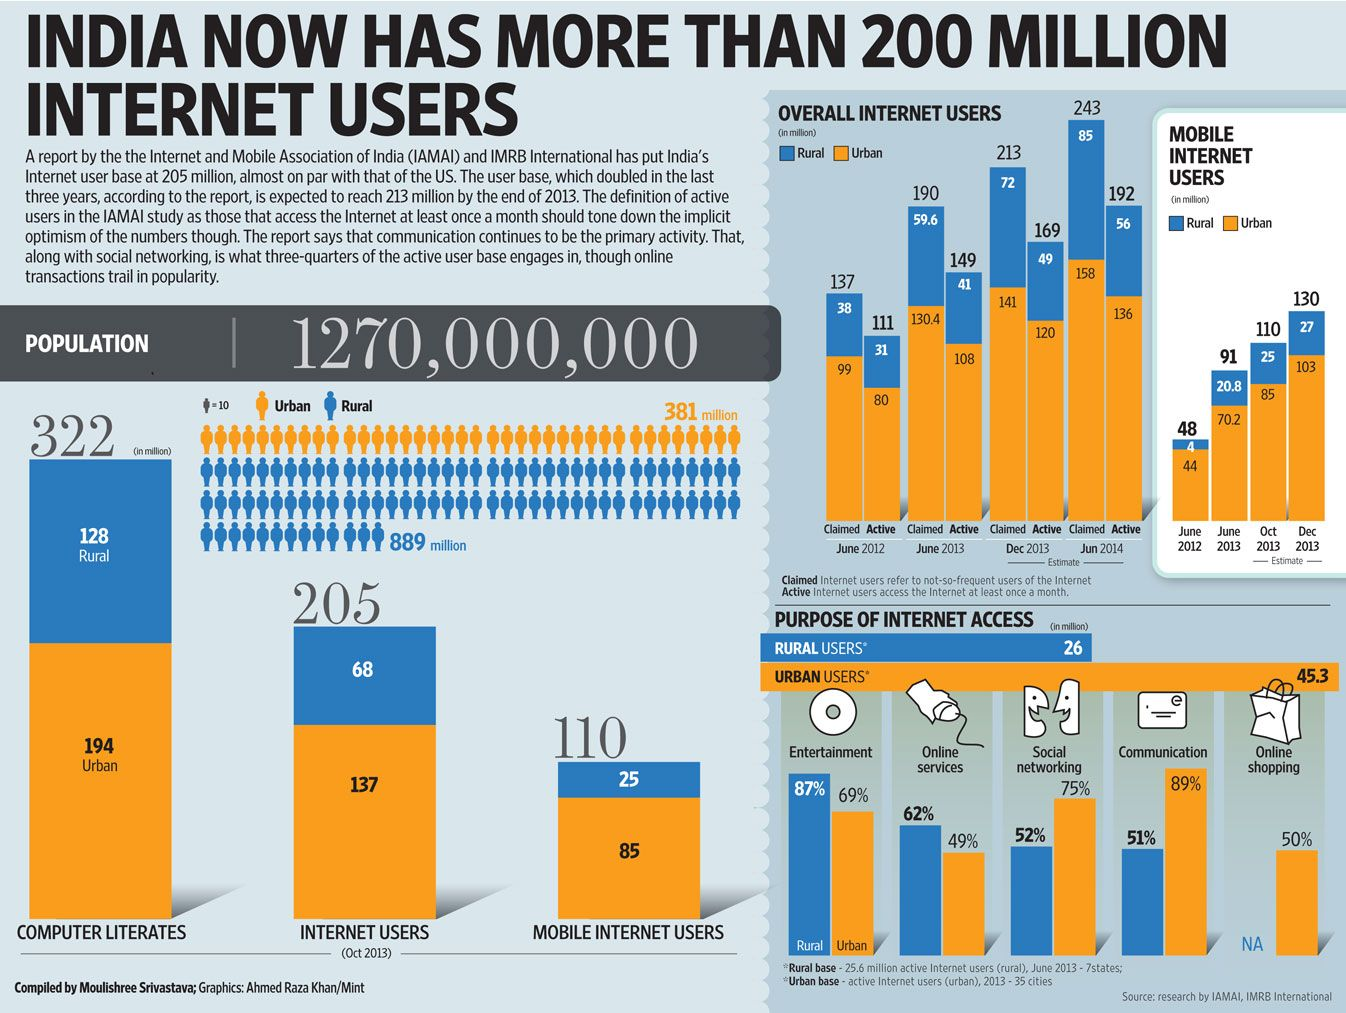 India now has more than 200 million users